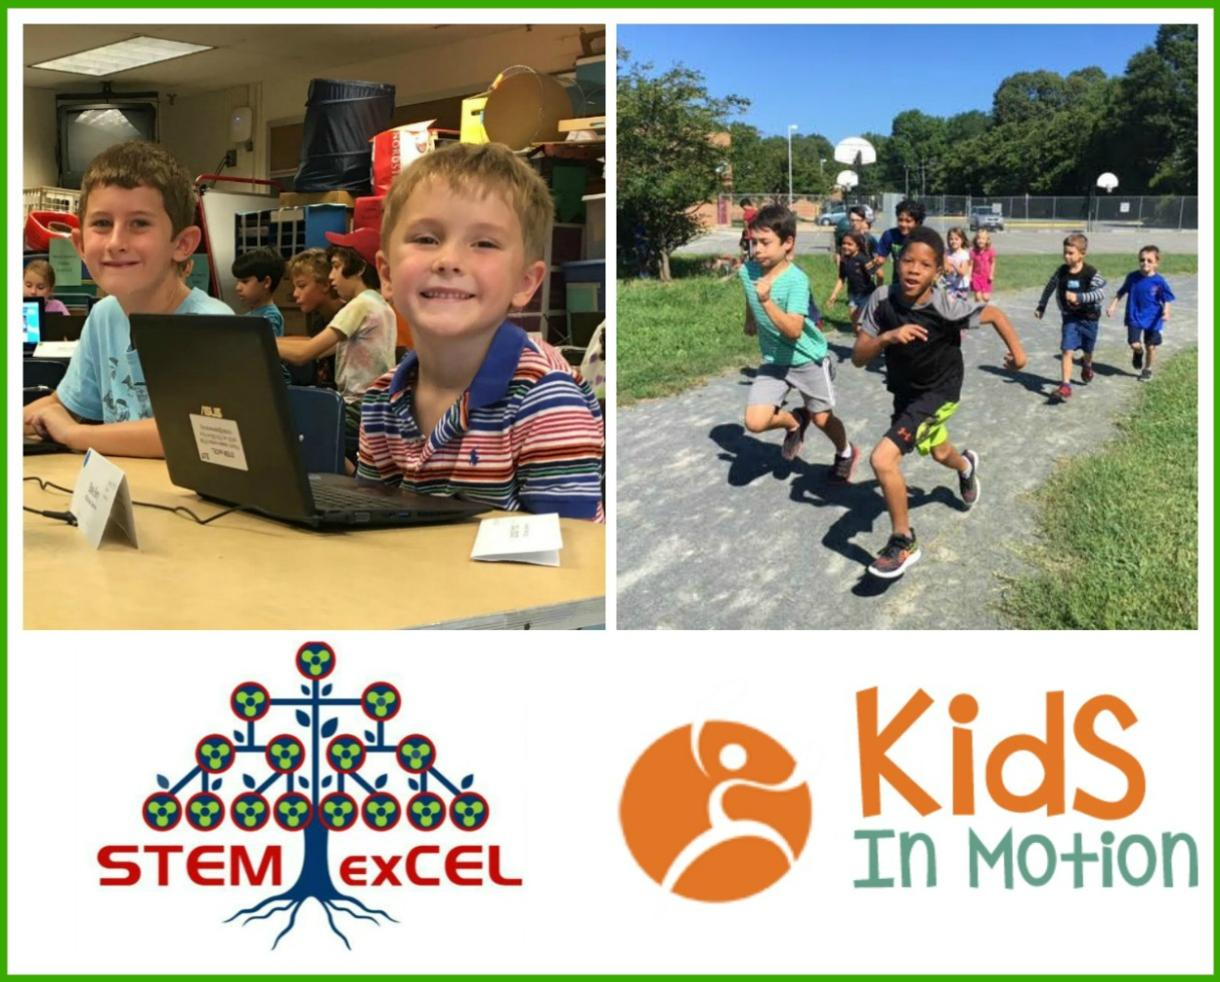 $292 for Kids in Motion/STEM exCEL Fitness and Technology Camp for Rising 1st-6th Graders - Falls Church or Springfield ($73 Off)